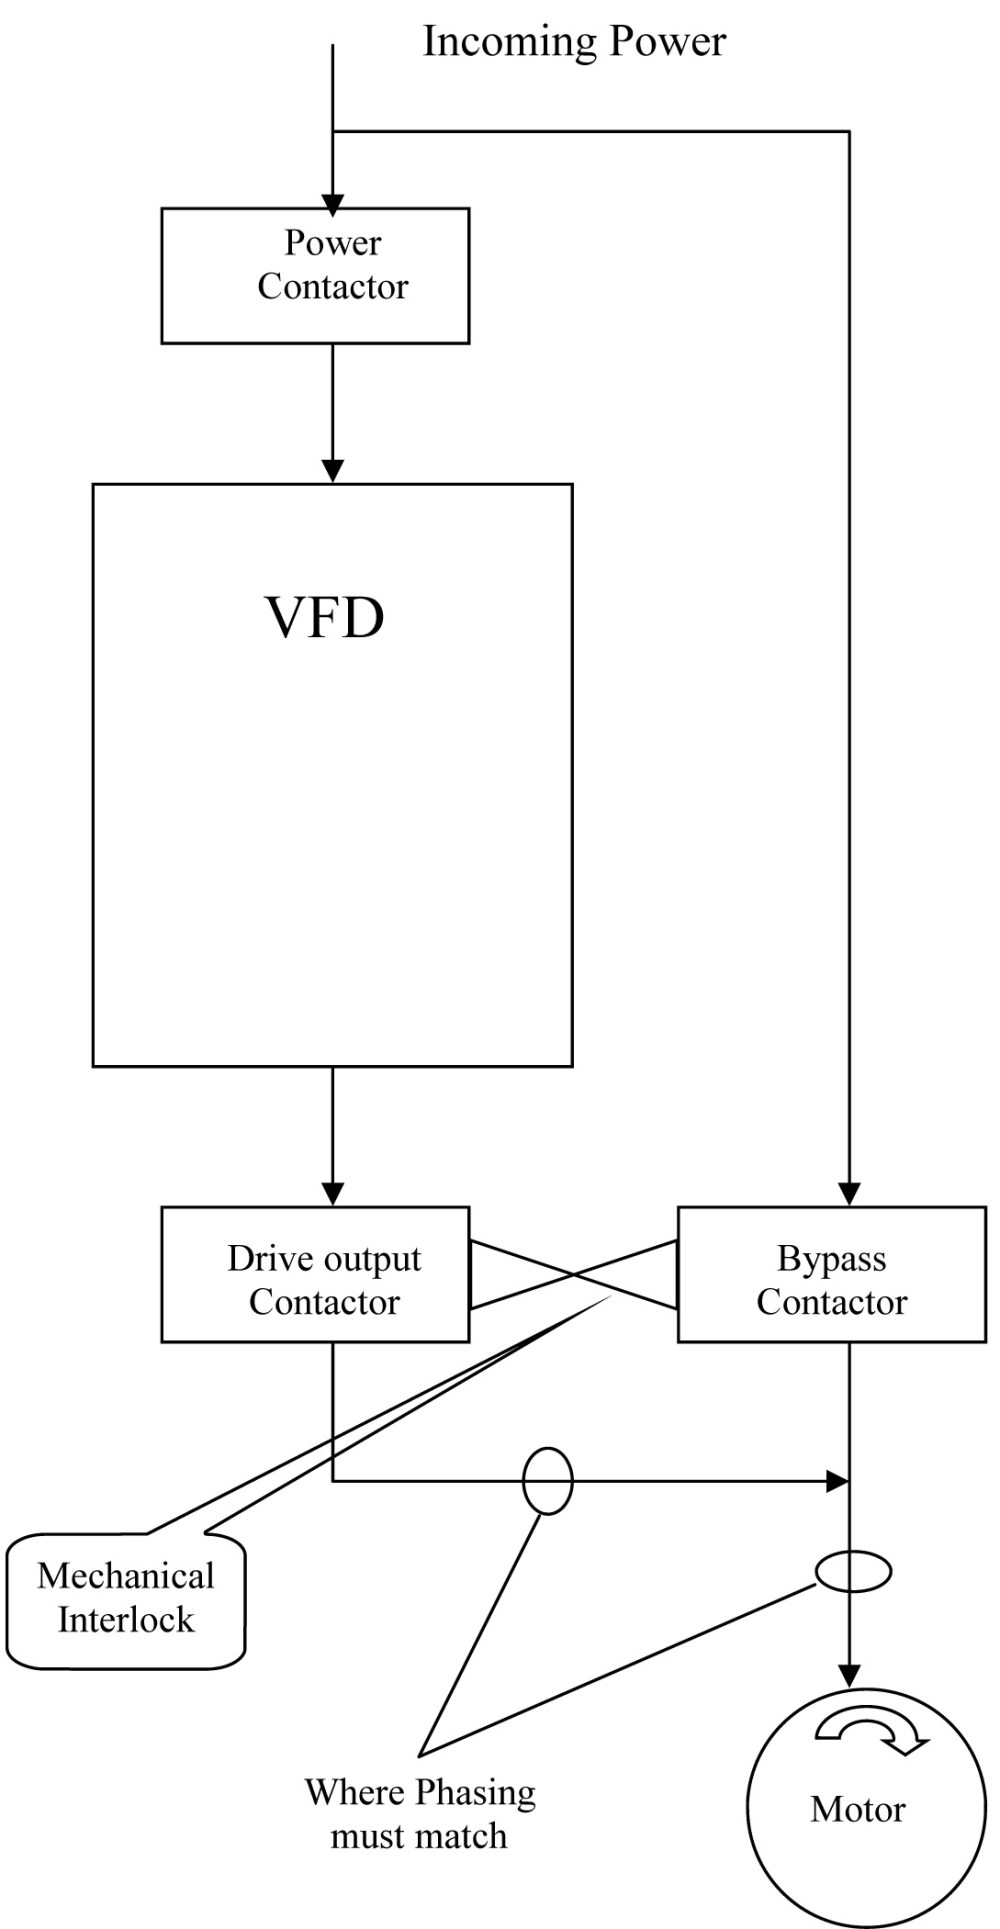 medium resolution of proper phasing of a vfd with bypass delta automation inc abb wiring diagrams 3 vfd byp contactor wiring diagram